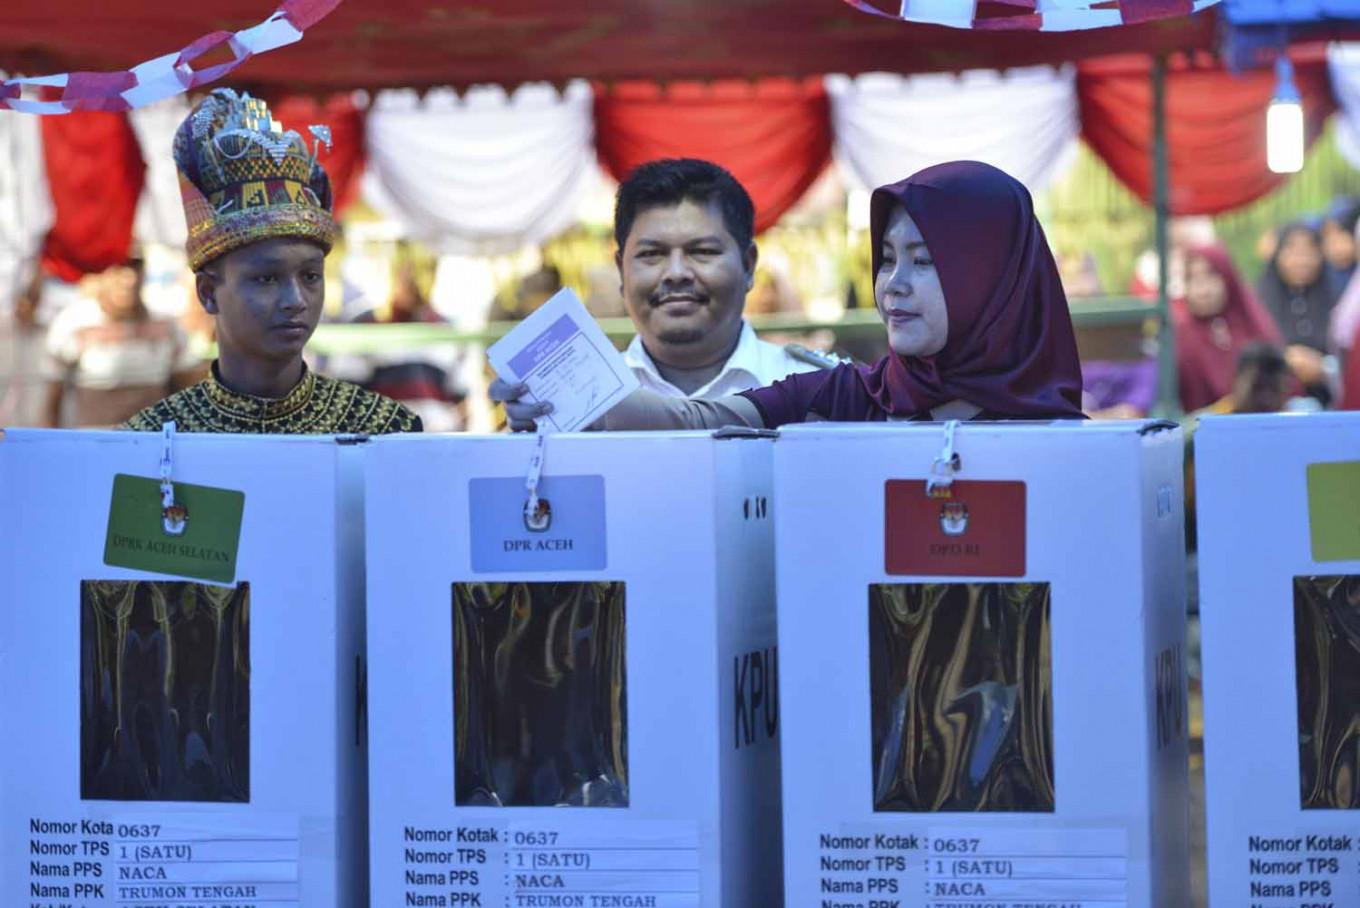 Enthusiastic voters enliven elections, boost turnout